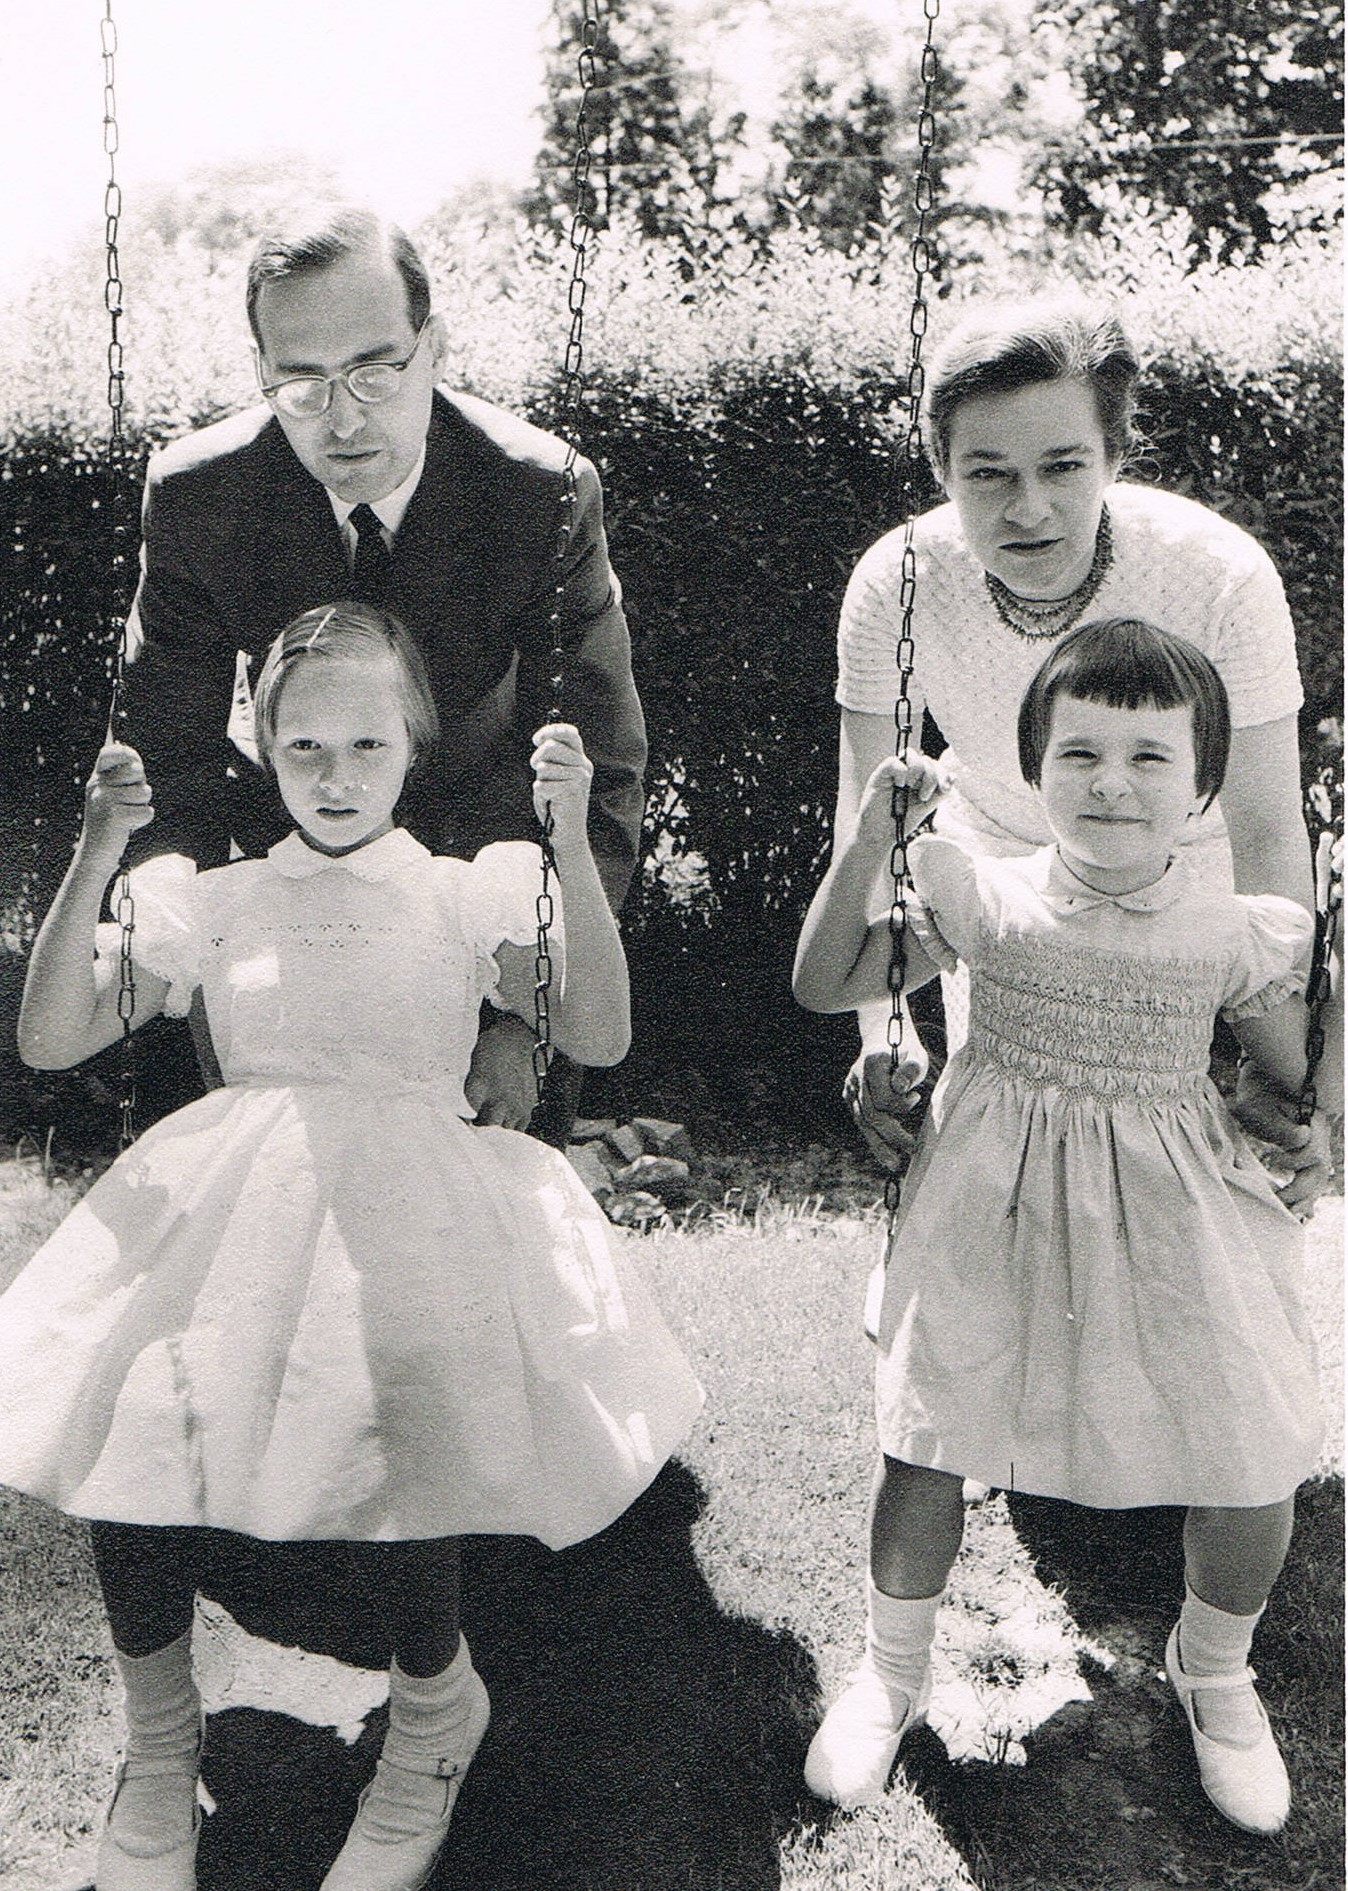 Doctors Dayton Forman and Joan Vale with their daughters in the 1960s. (That bowl cut really suited my round head – said no one ever.)